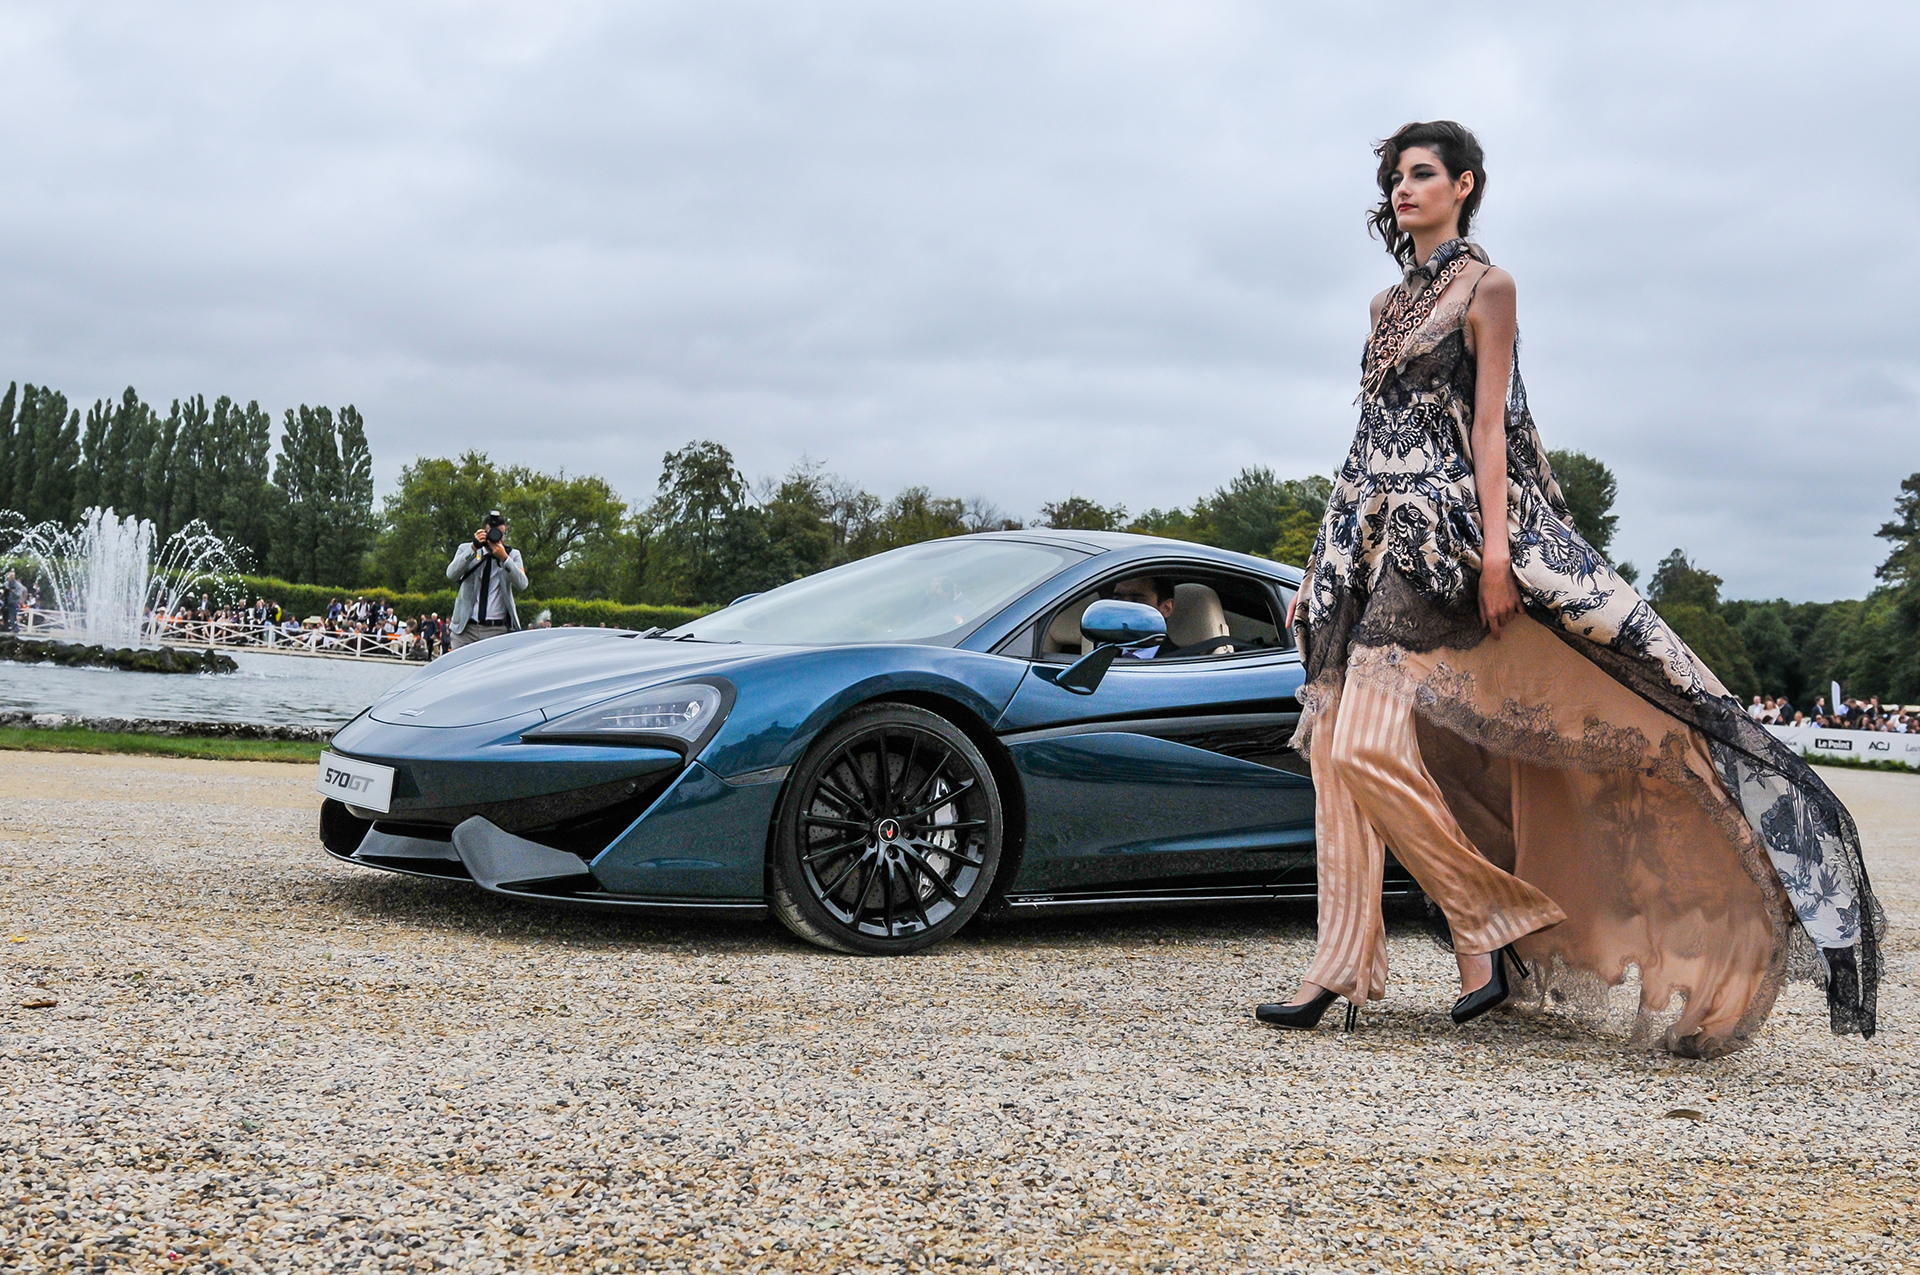 Chantilly 2016 - McLaren 570GT By McLaren Special Operations - fashion Jean-Paul Gaultier - photo by Pierre-Yves Riom